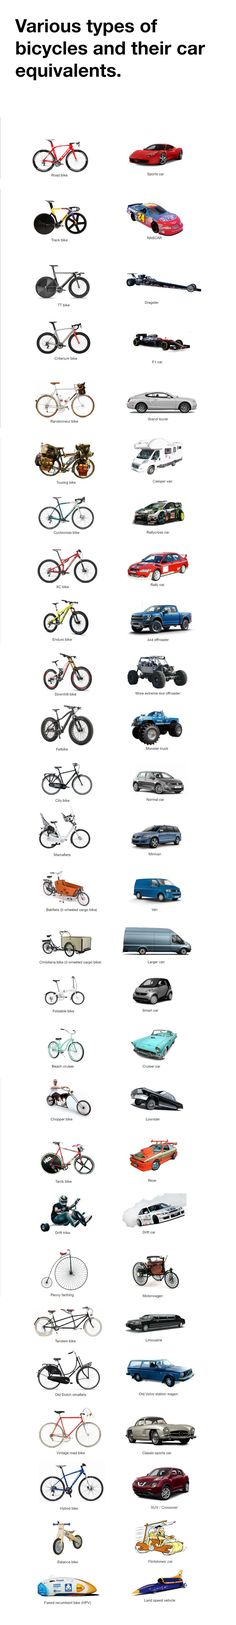 Bikes and cars that are similar to them (ver2)